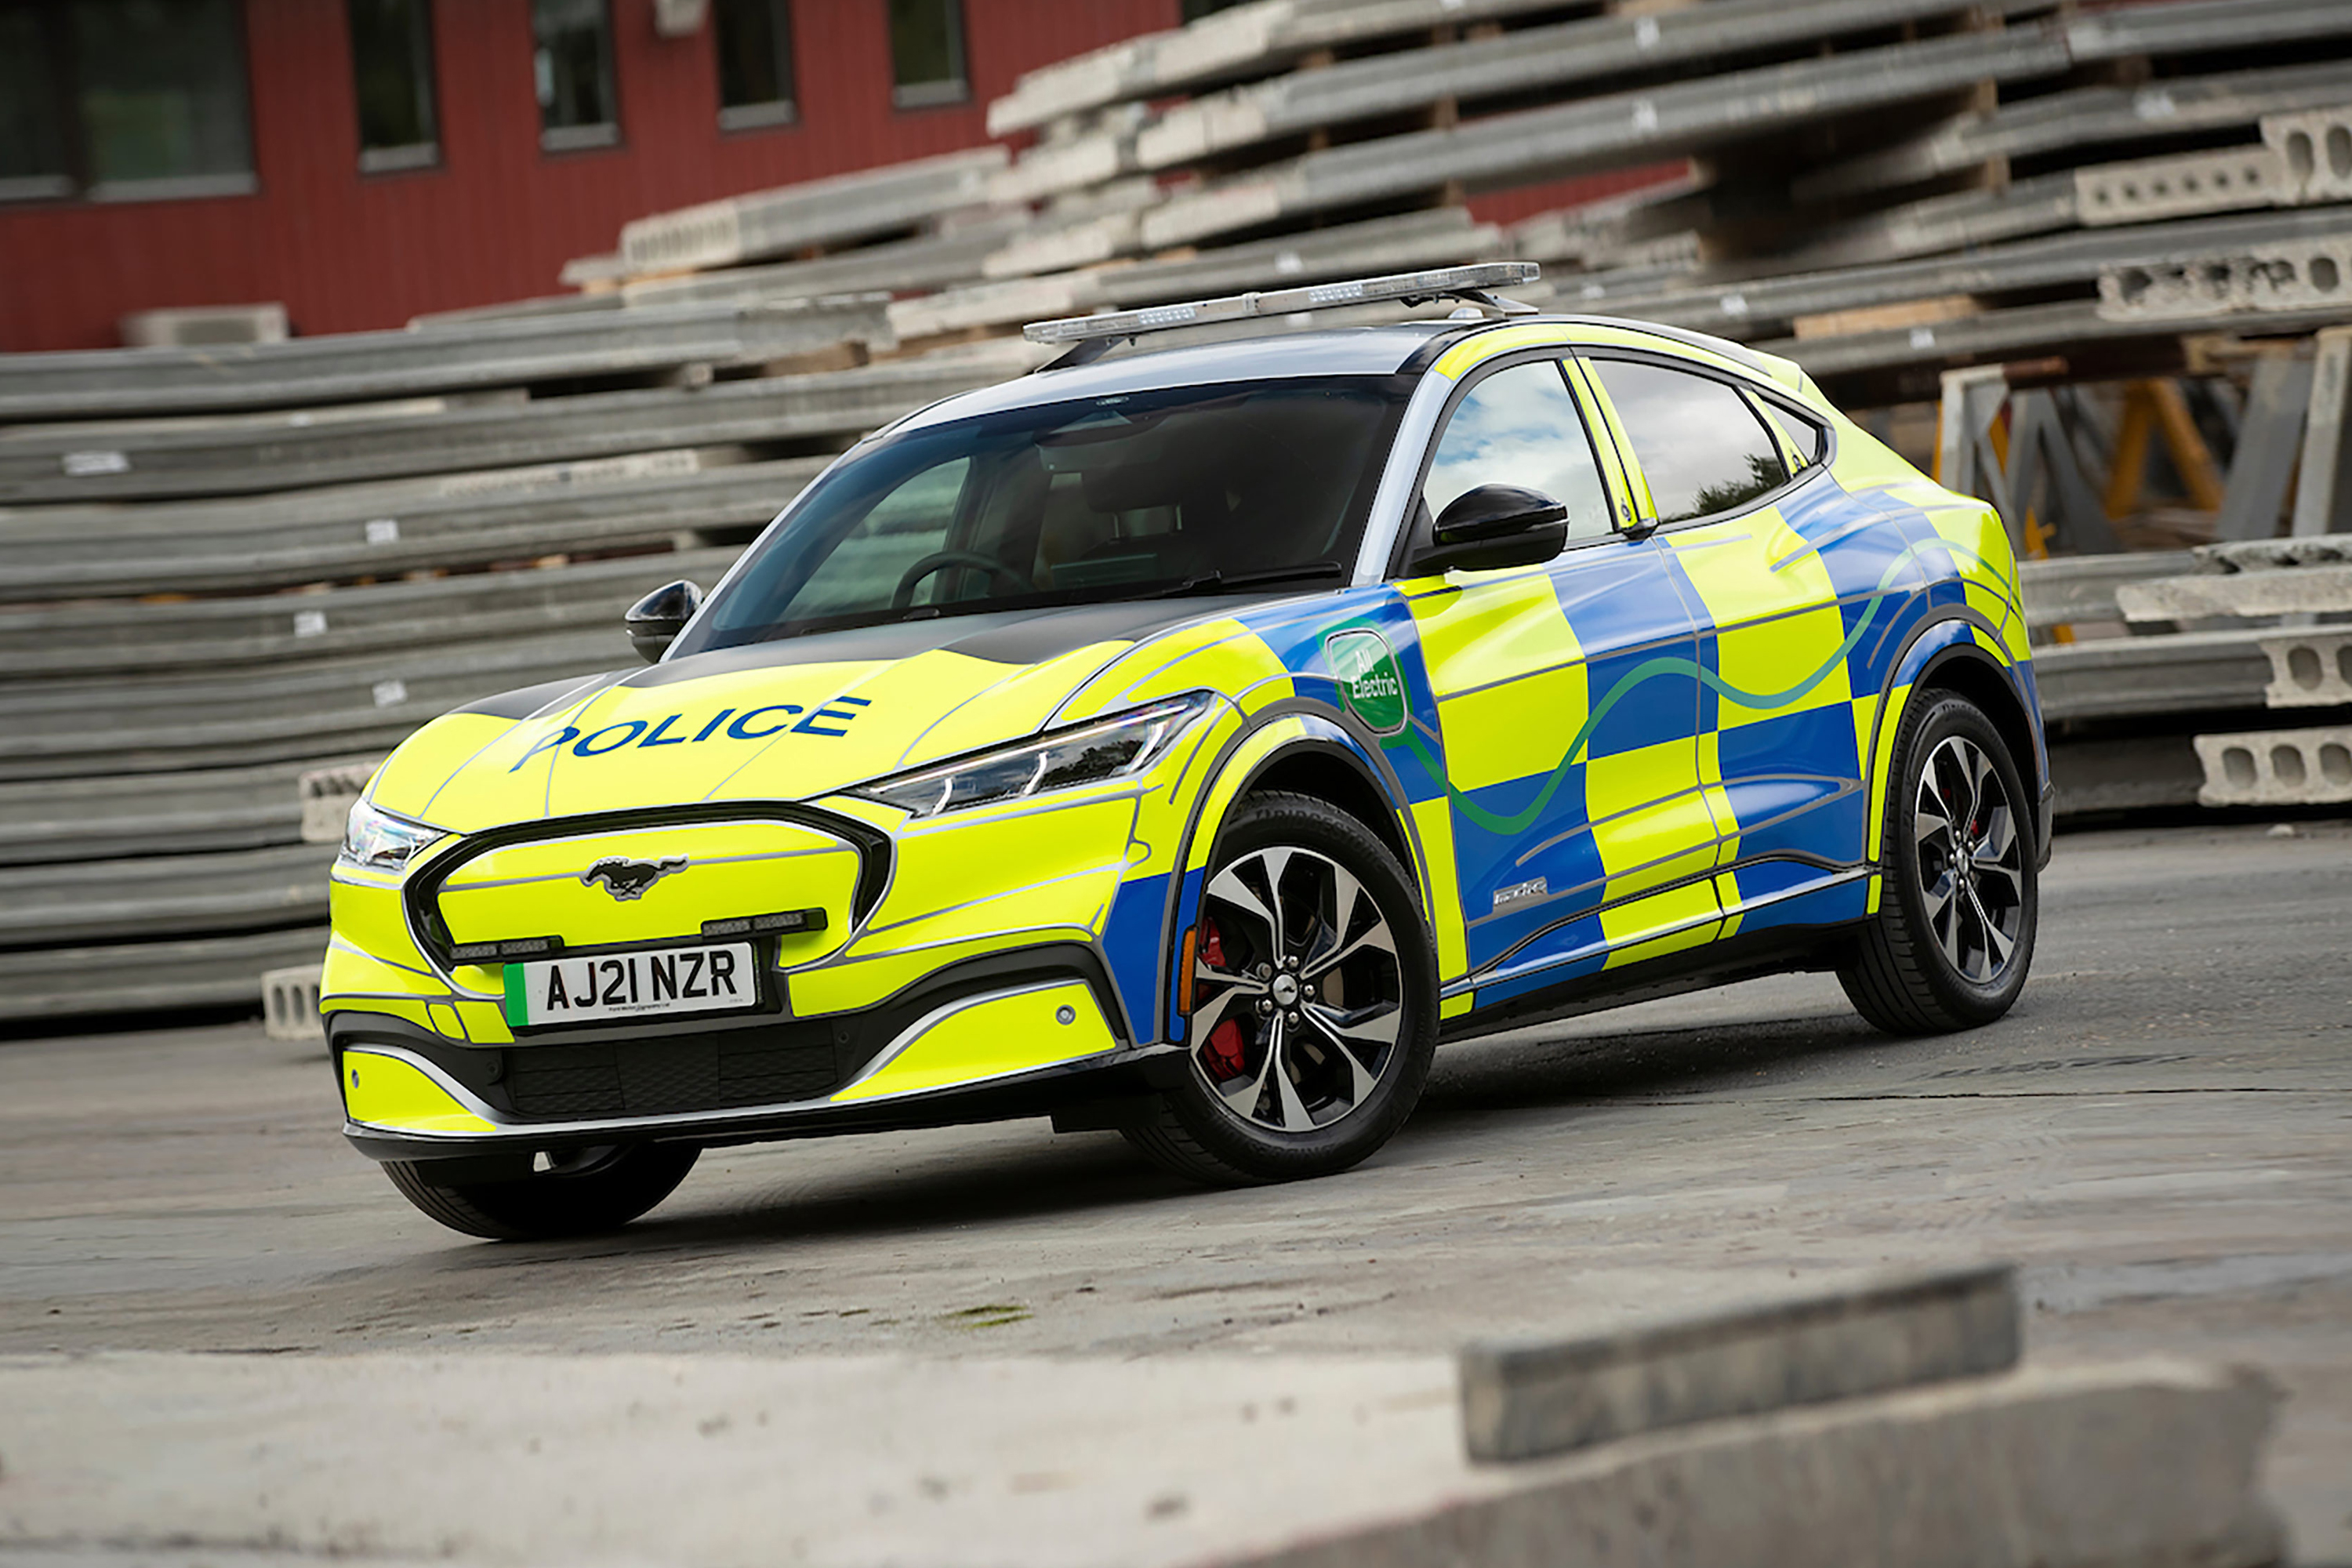 Ford Mustang Mach-E UK Police Car Concept - front